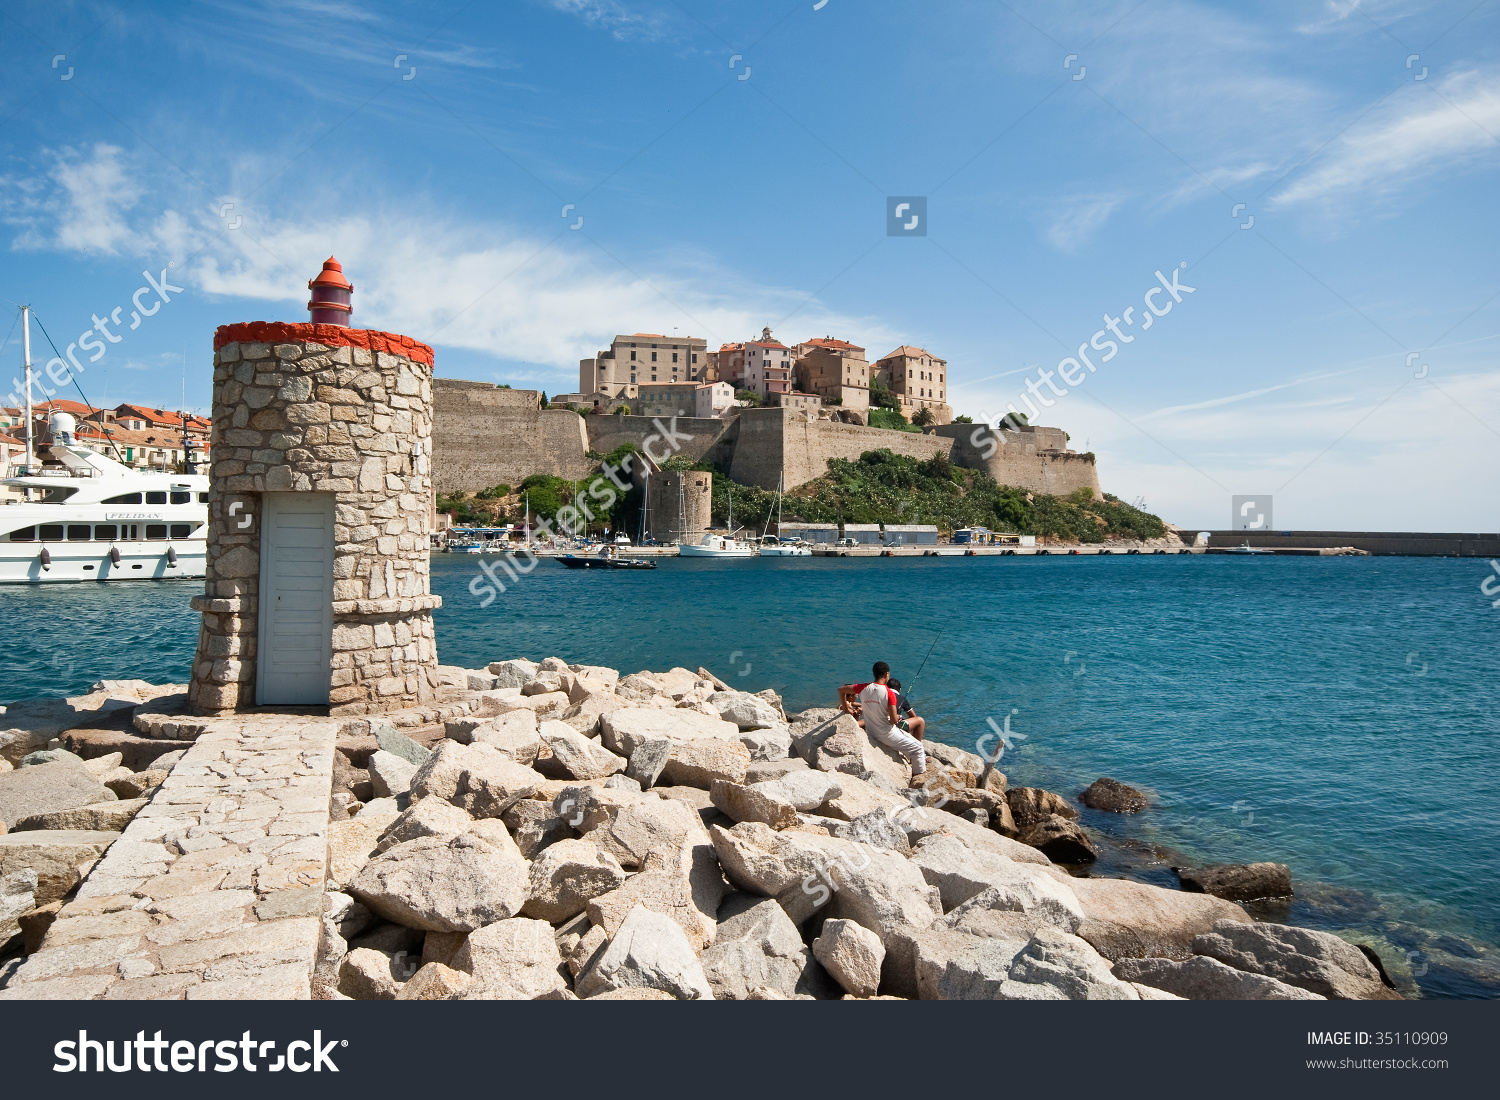 The Calvi Castle In Corsica Stock Photo 35110909 : Shutterstock.